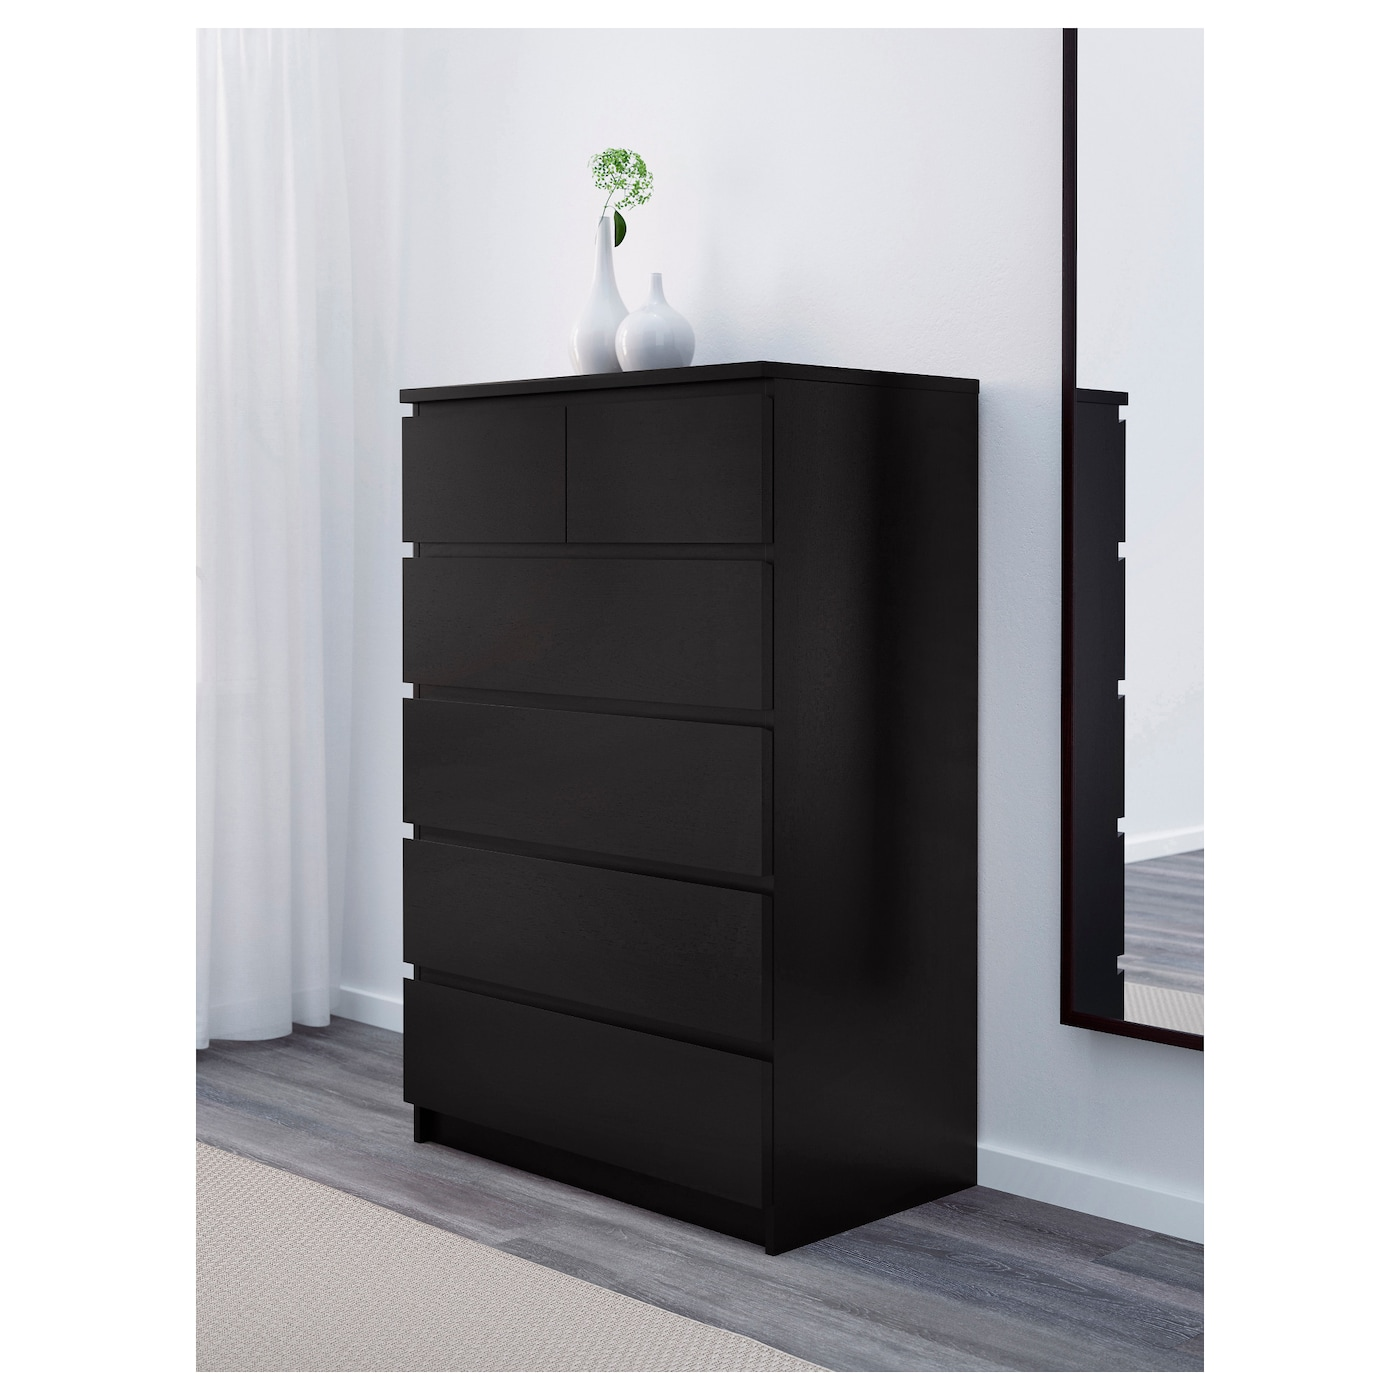 malm chest of 6 drawers black brown 80 x 123 cm ikea. Black Bedroom Furniture Sets. Home Design Ideas